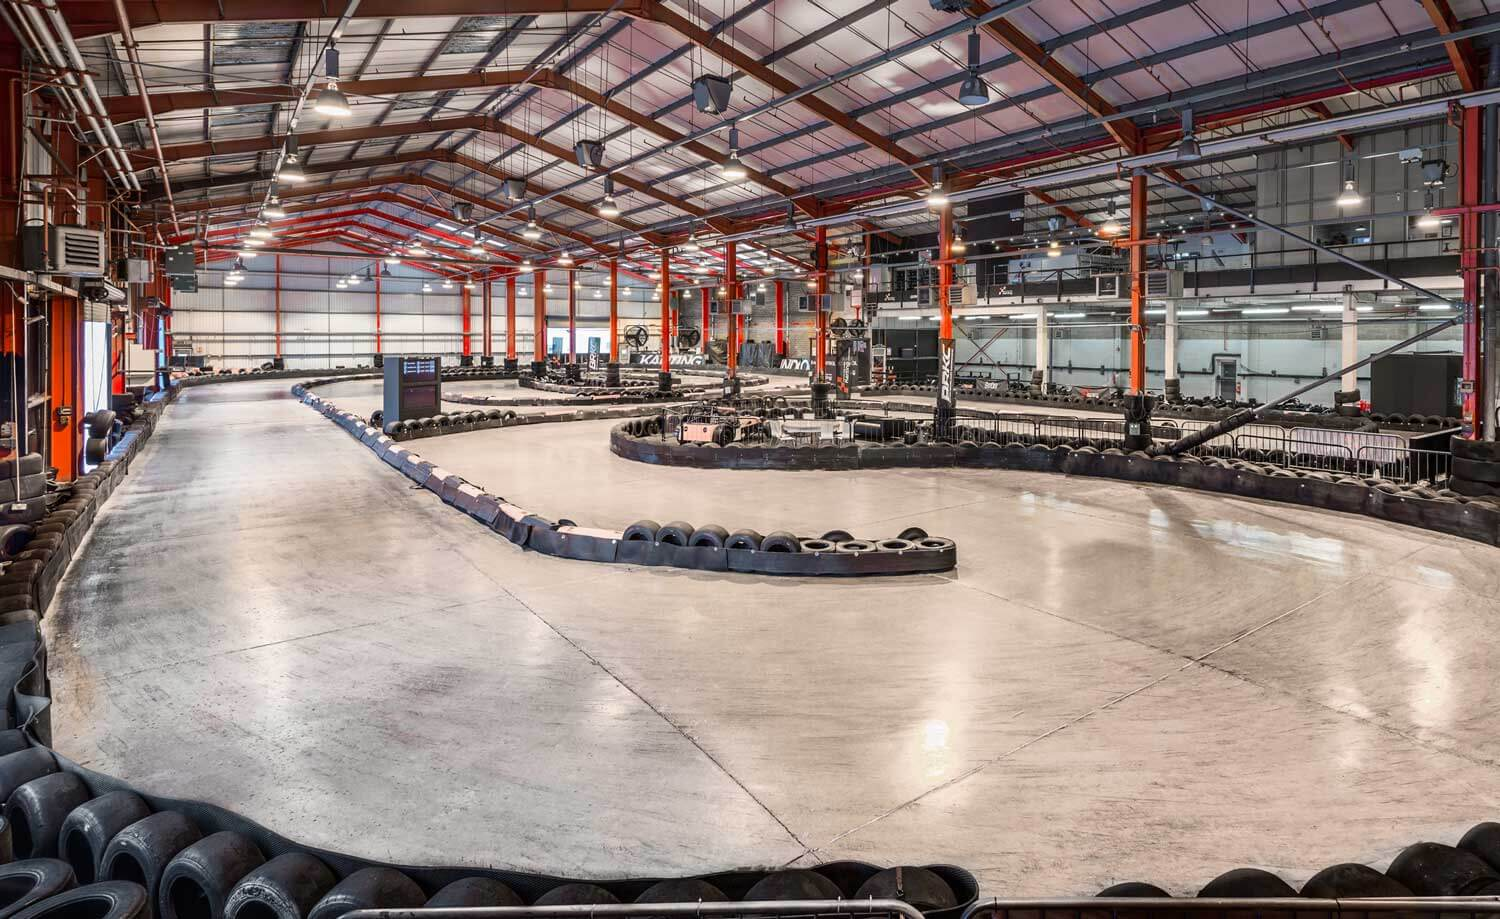 View of the shiny empty track at Formula Fast Indoor Karting.